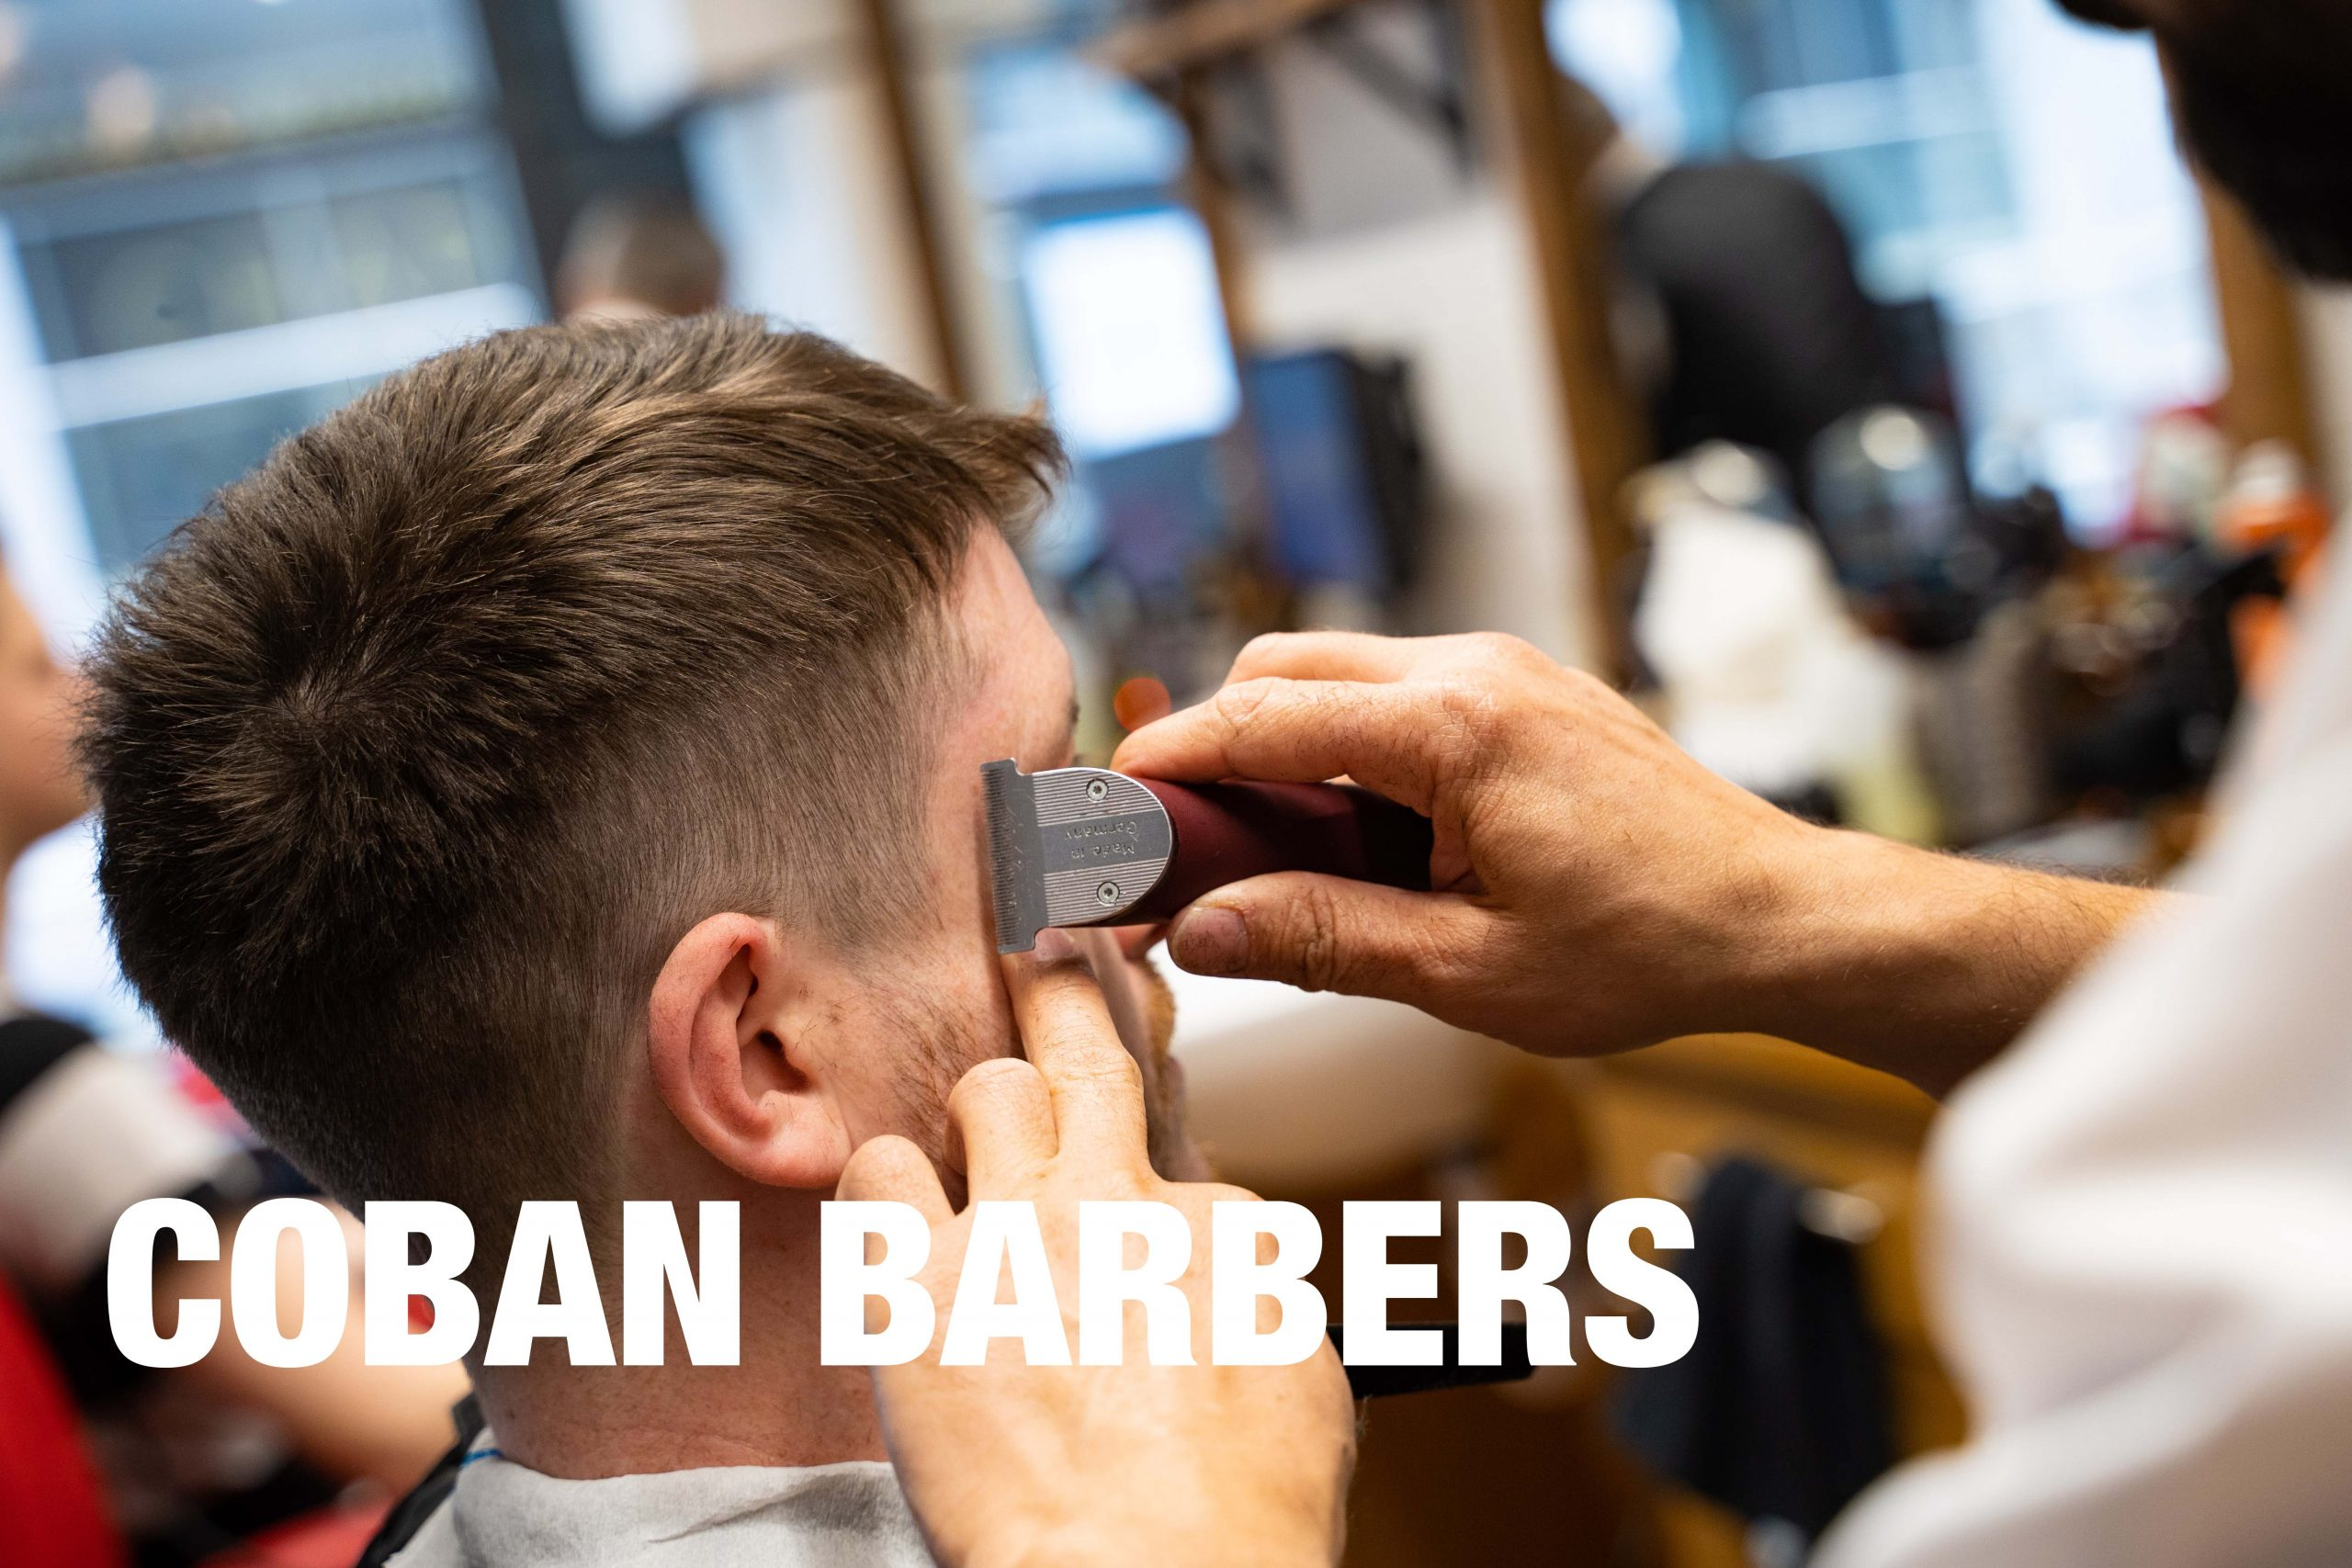 COBAN BARBERS – Turkish Barbershop in London